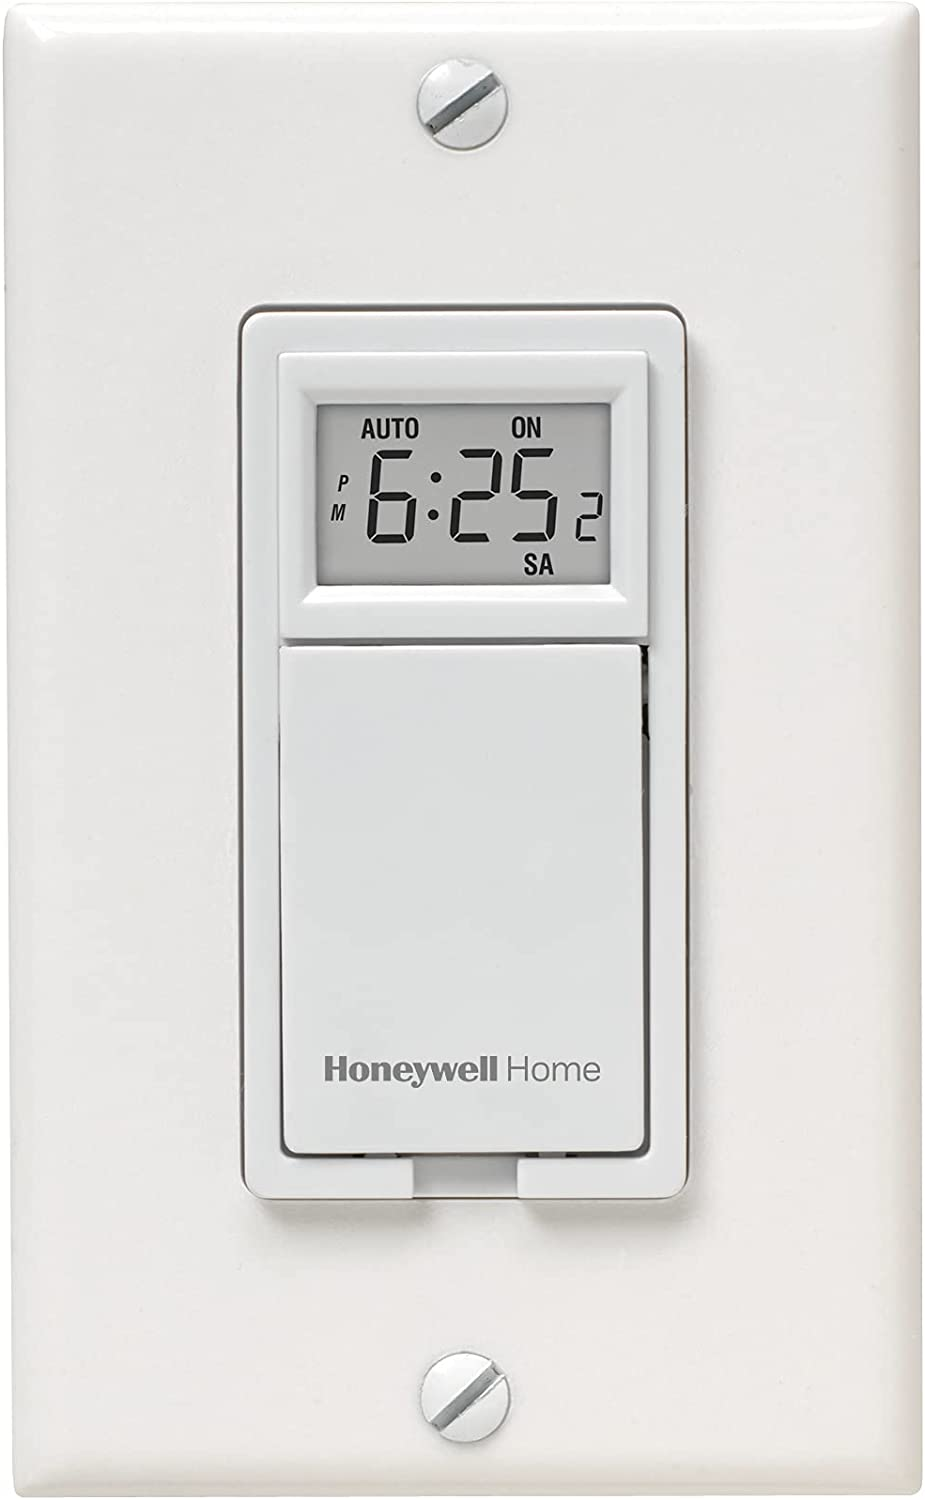 Honeywell RPLS530A 7-Day Programmable White Switch Timer Latest item New product! New type Requi